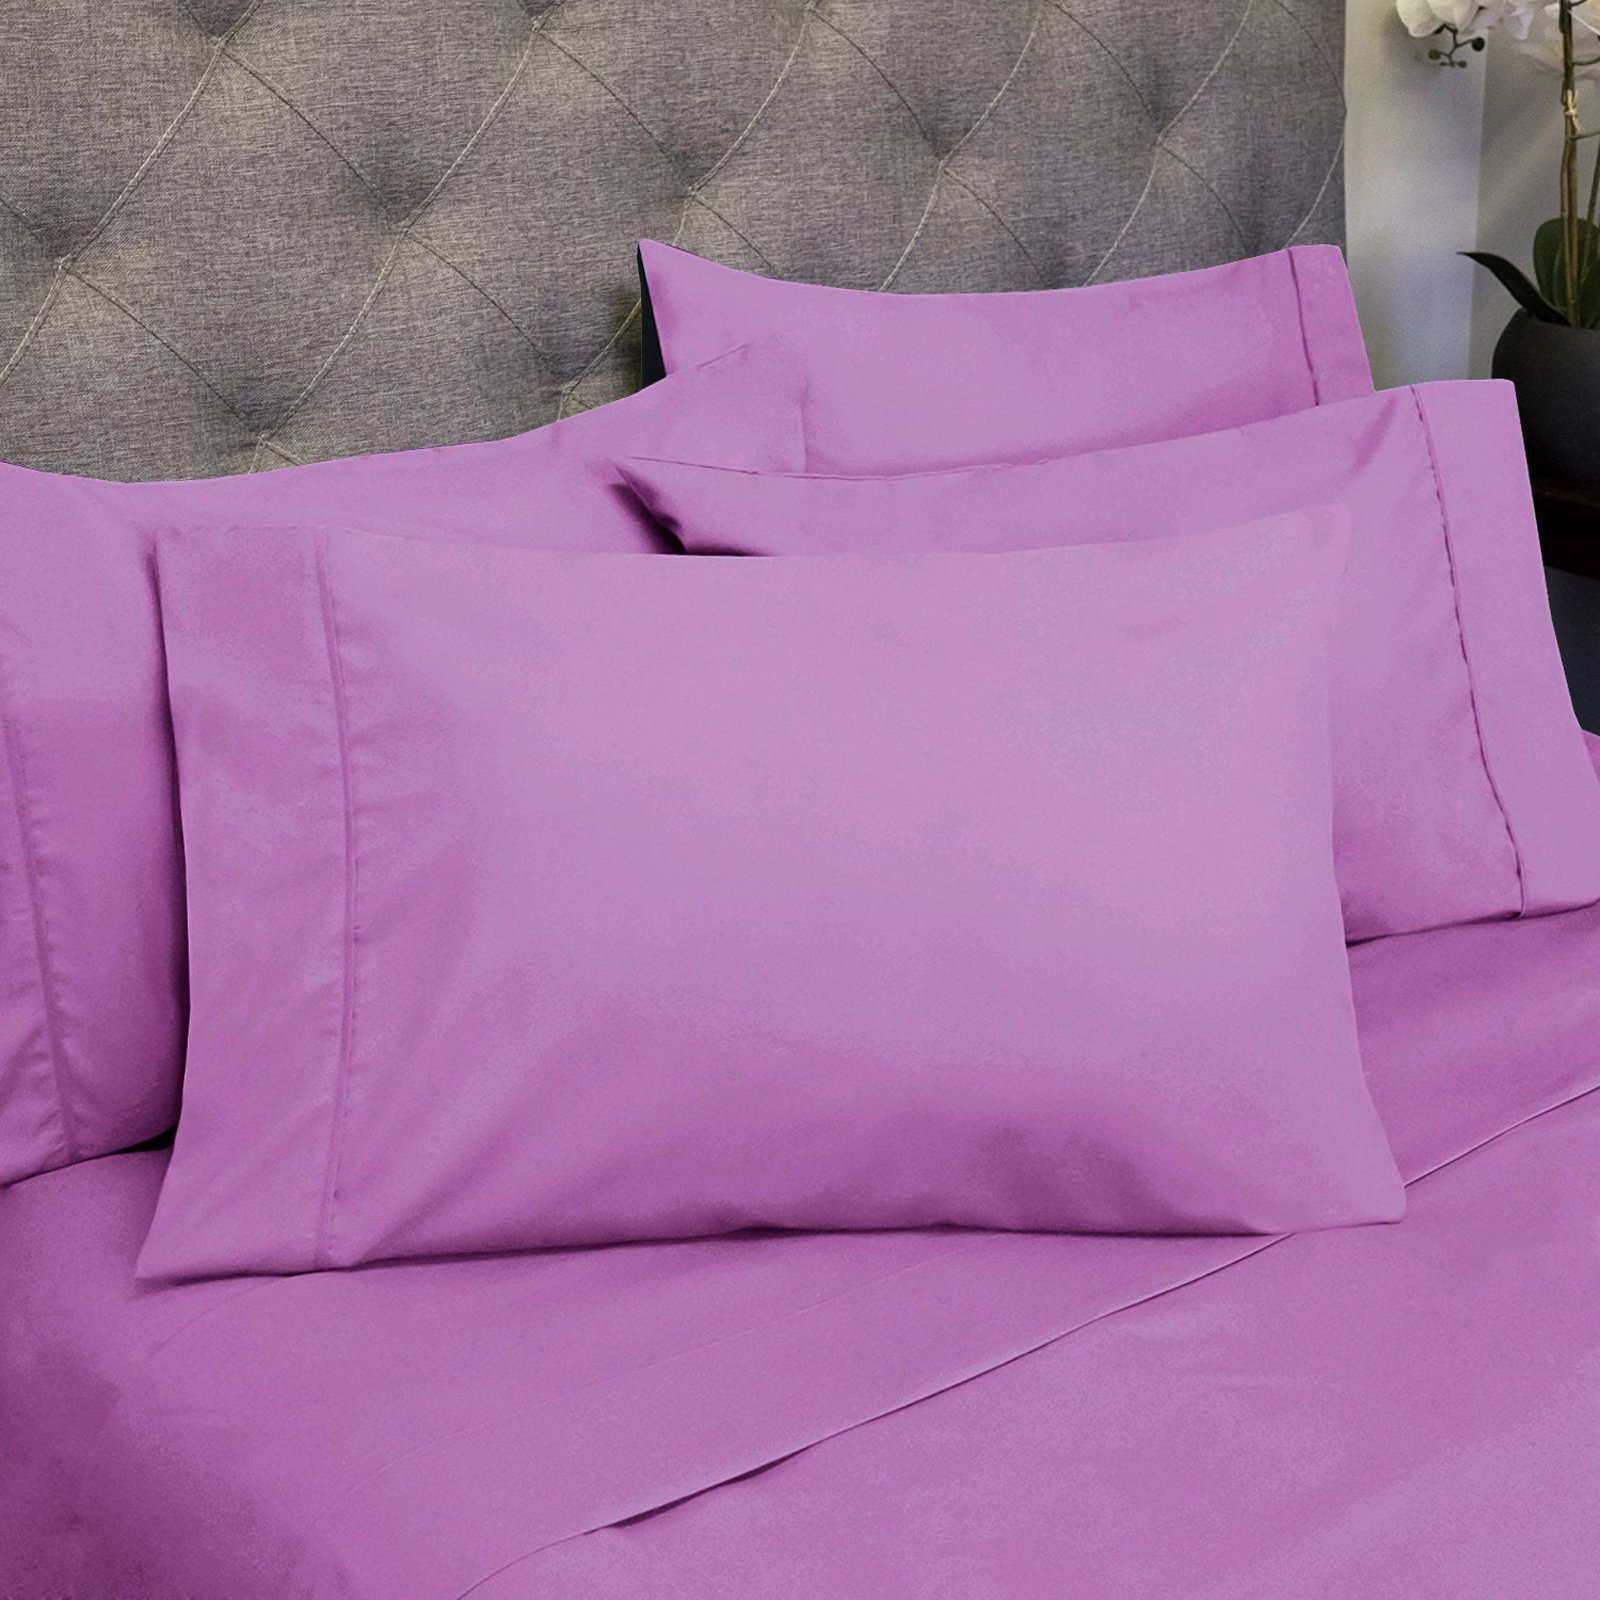 Egyptian 6 Piece 1500 Thread Count Bedroom Sheet and Pillowcase Set by Sweet Home Collection